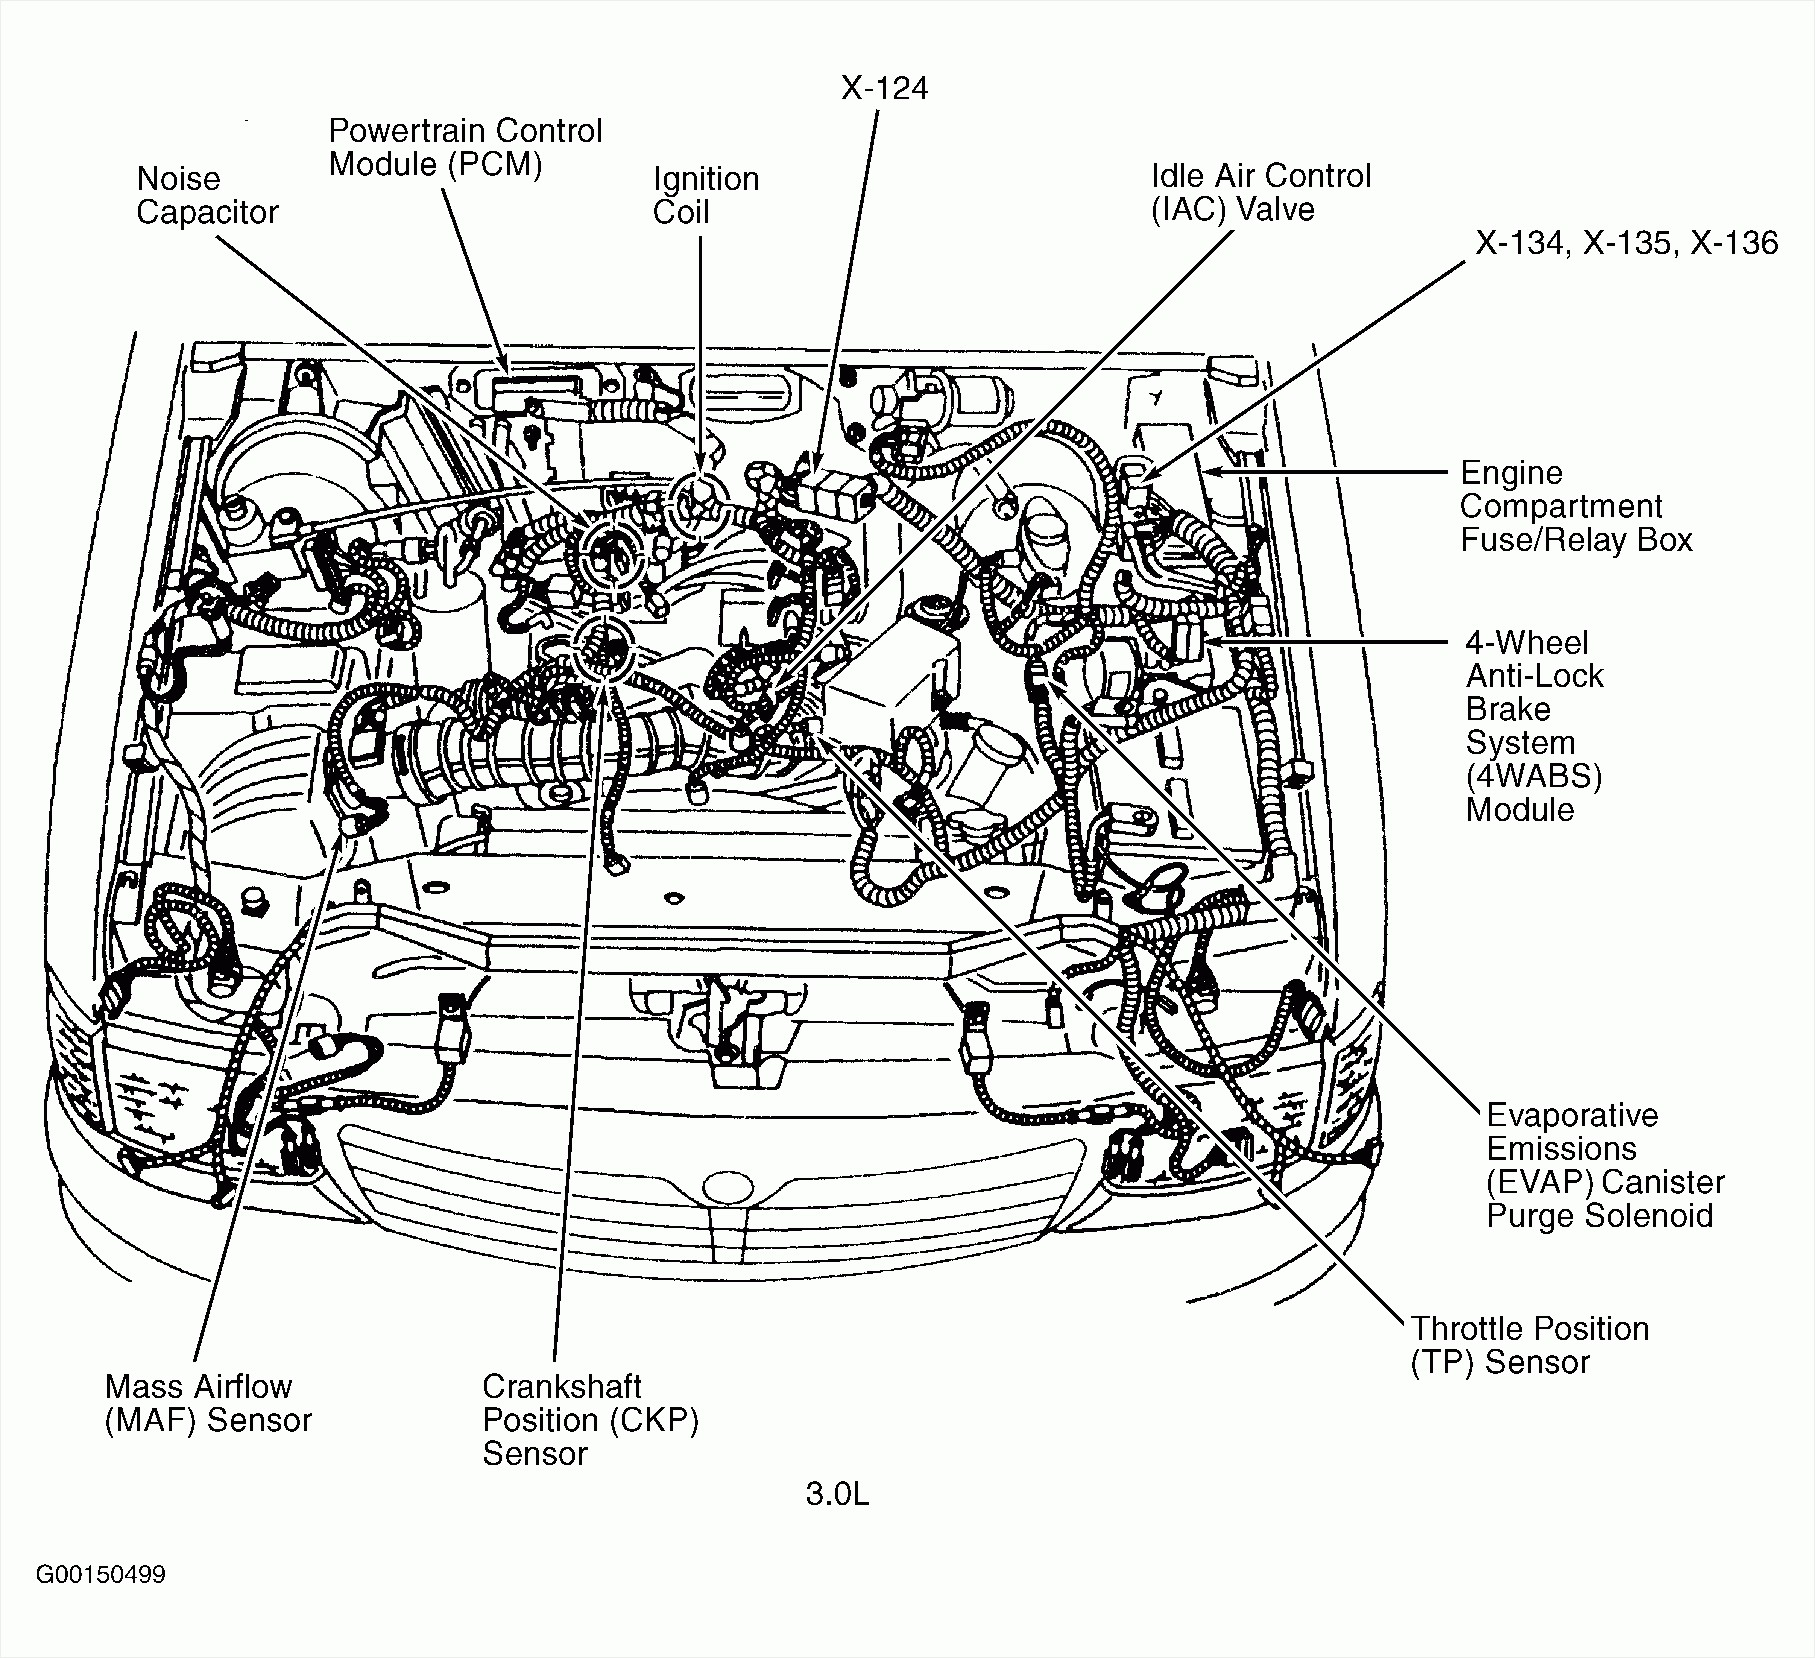 1999 chrysler lhs engine diagram wiring diagram site Dodge Dakota Exhaust System Diagram